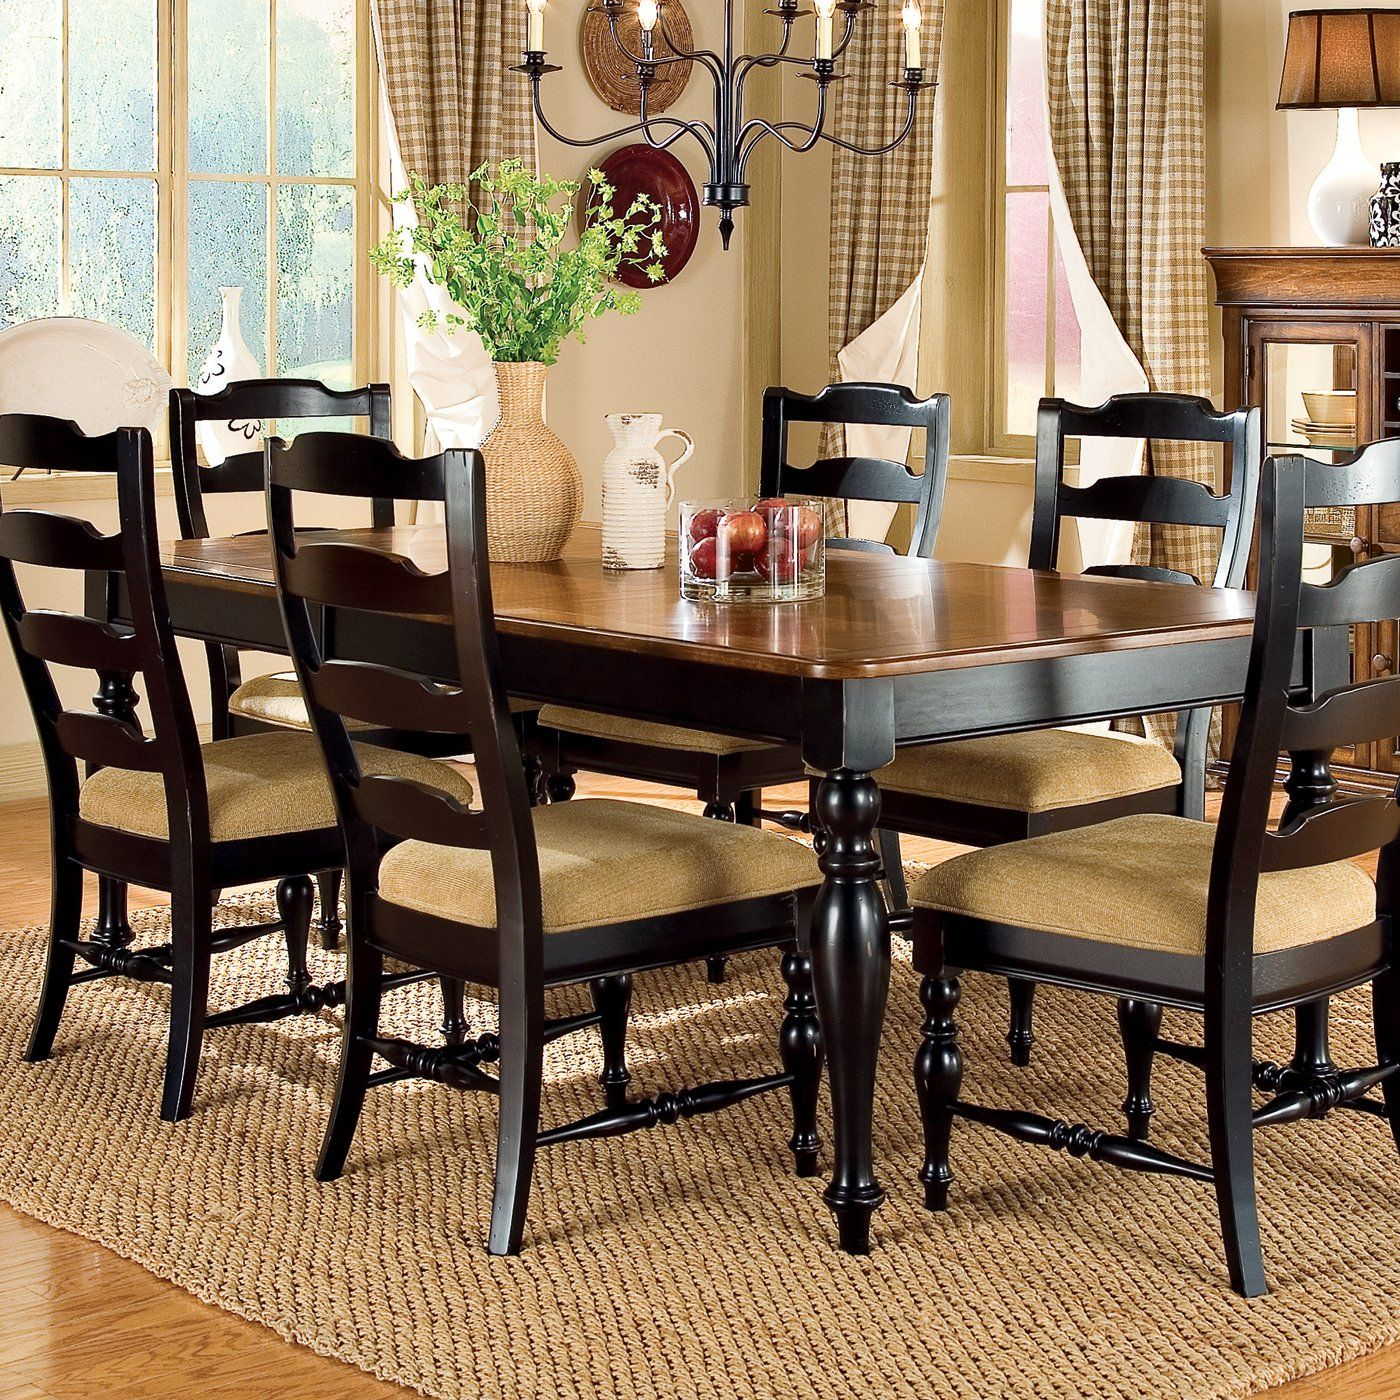 Southern Style Peters Revington 25866 Shenandoah Valley Rectangular Dining Table Cherry Southern Living Furniture Dining Room Sets Dining Table In Kitchen [ 1400 x 1400 Pixel ]